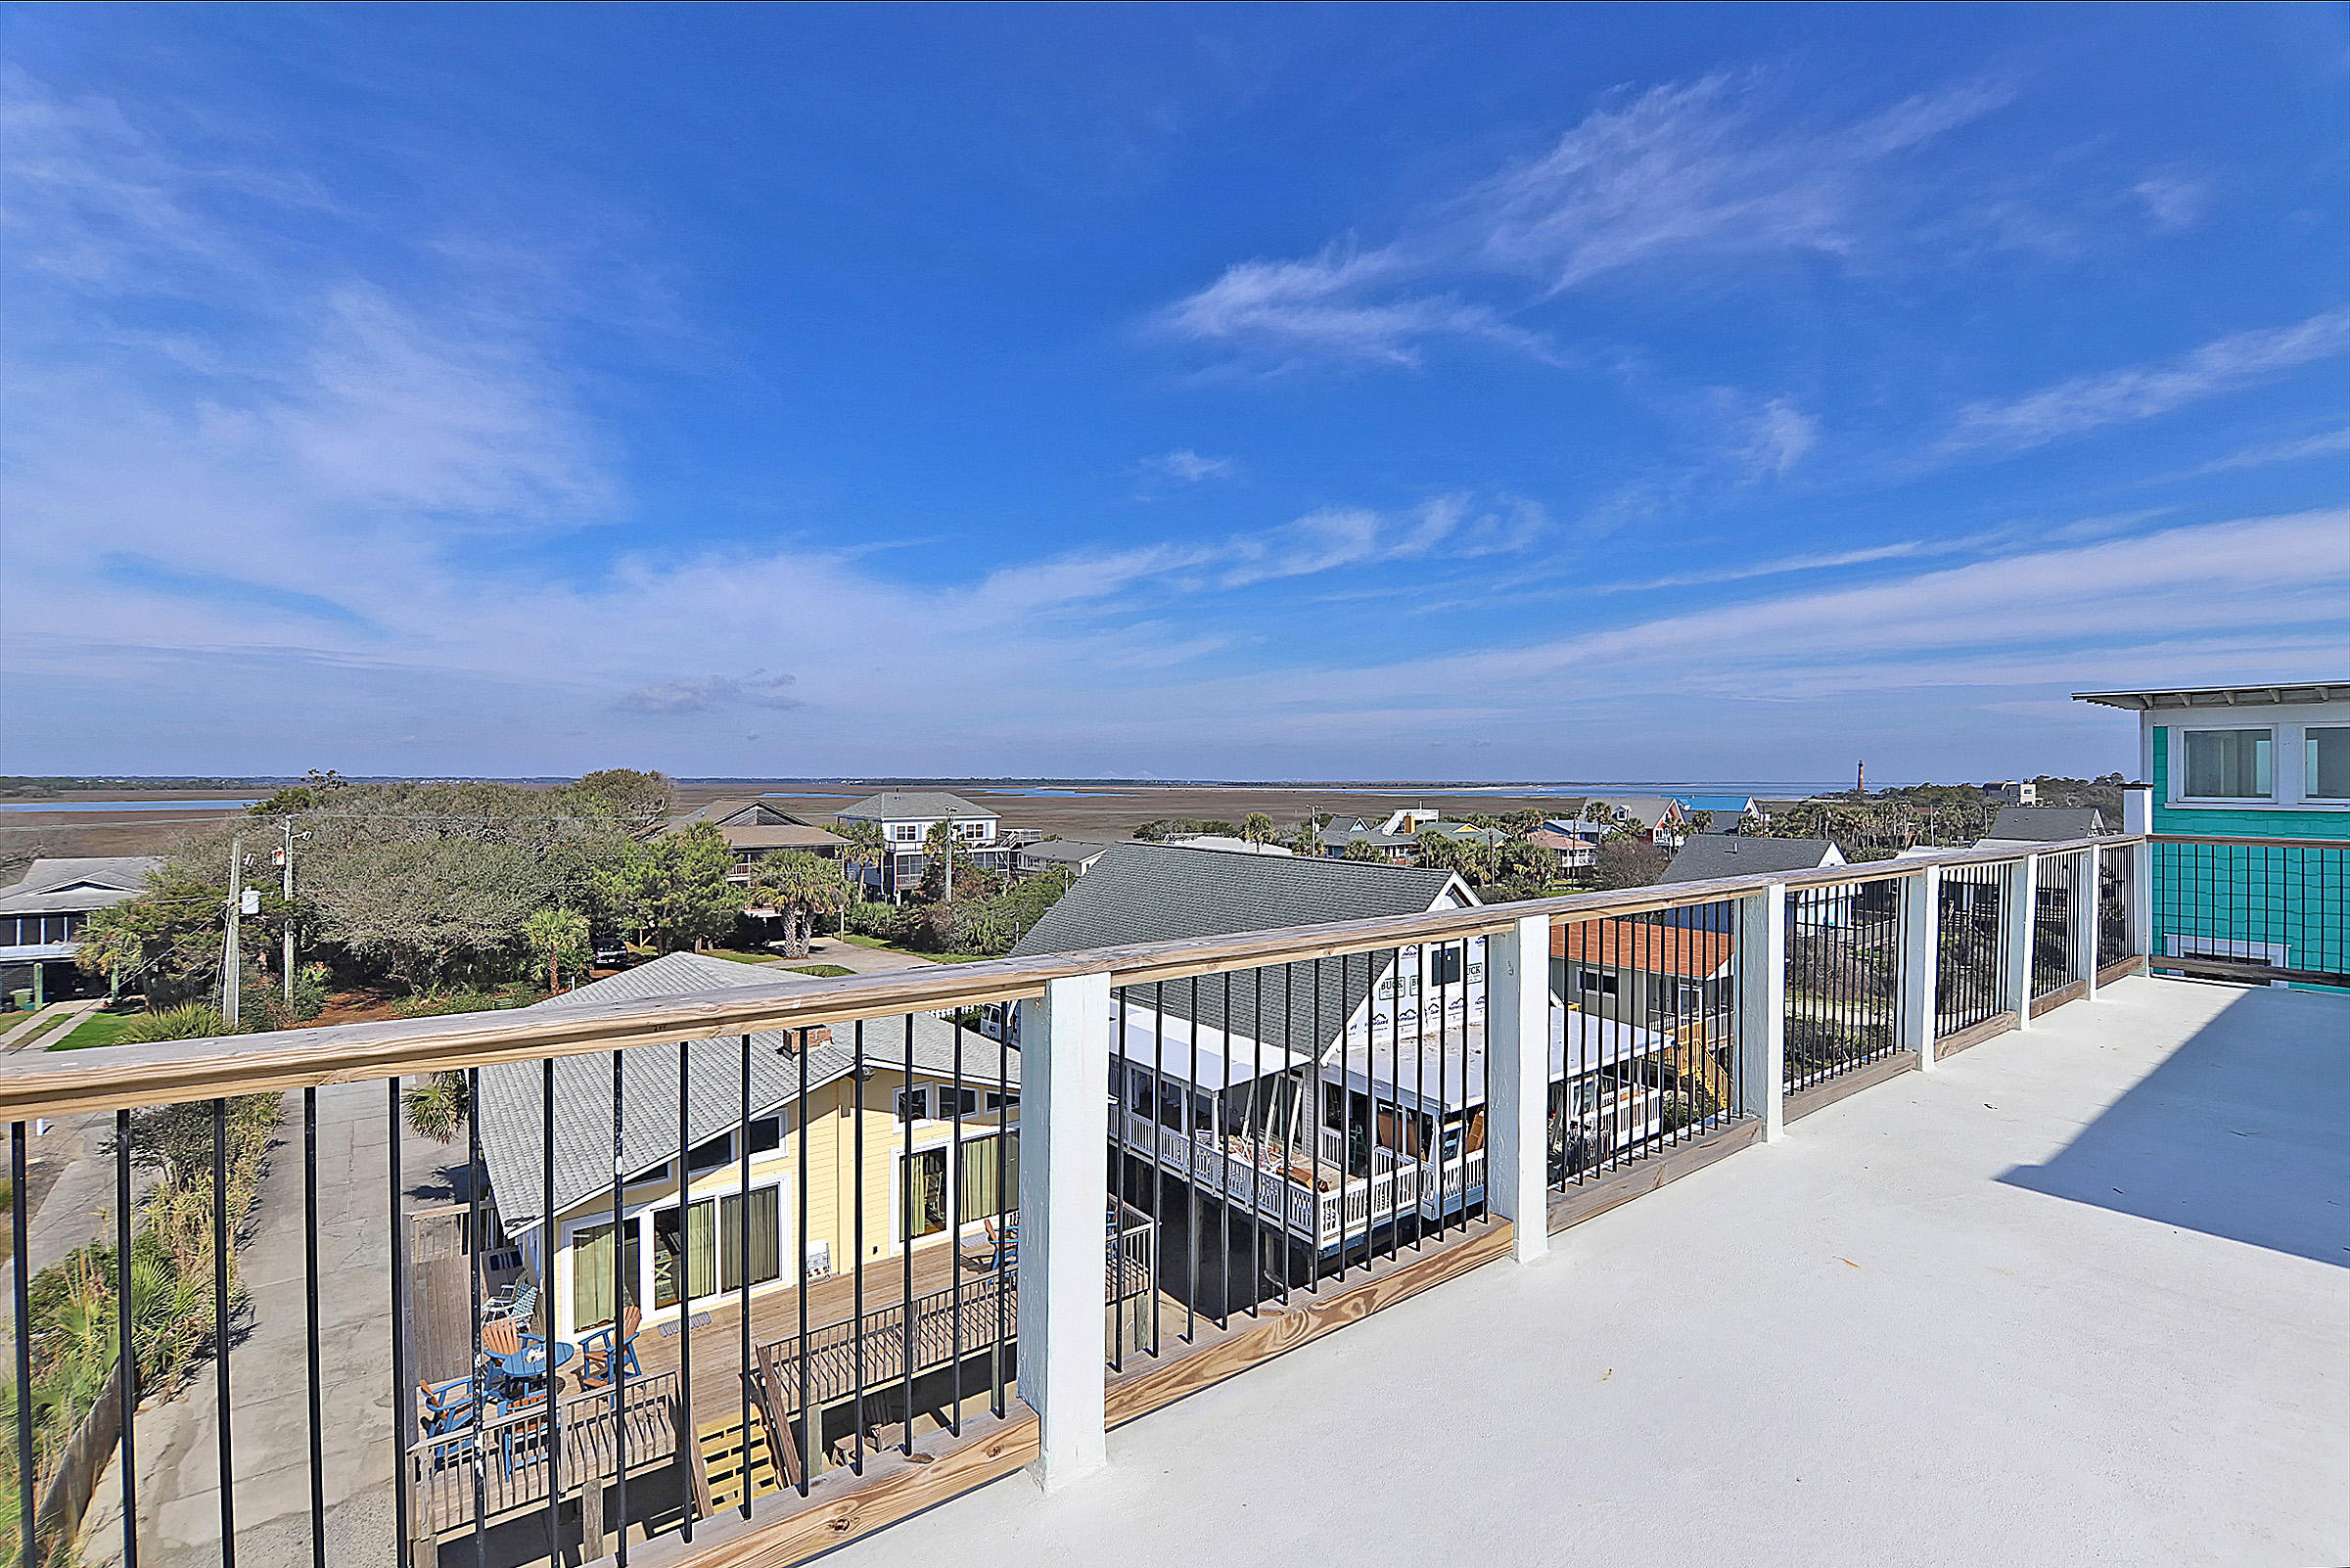 E Folly Bch Shores Homes For Sale - 1707 Ashley, Folly Beach, SC - 0